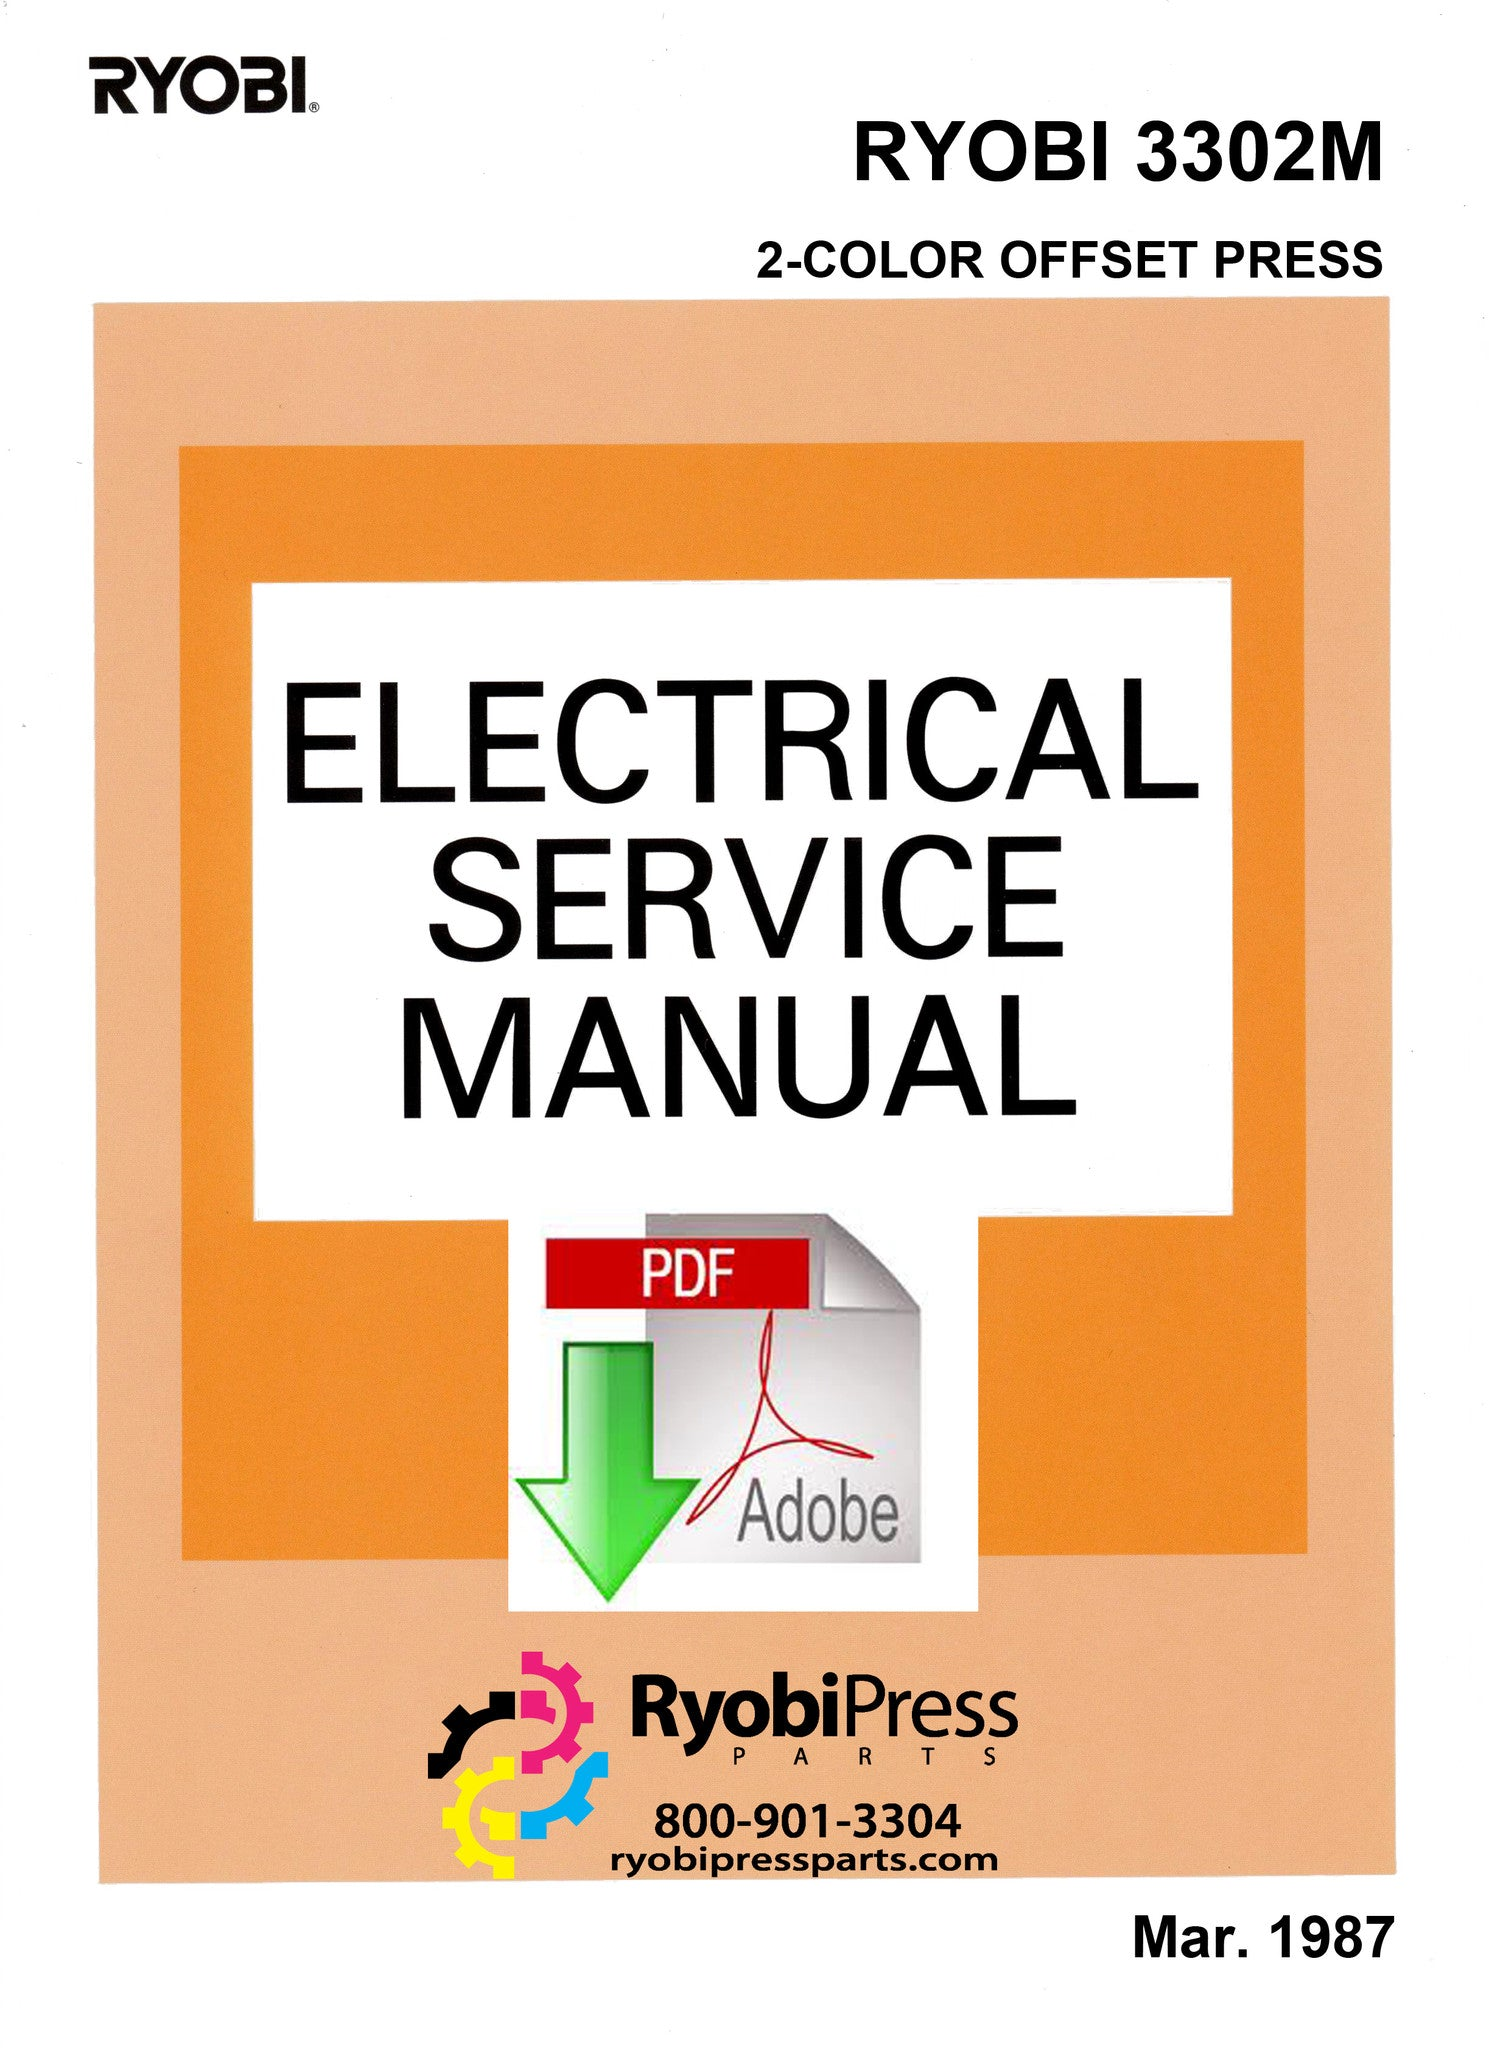 Jd 4239d service manuals ebook array service manual ryobi 522 he ebook rh service manual ryobi 522 he ebook angelayu fandeluxe Image collections